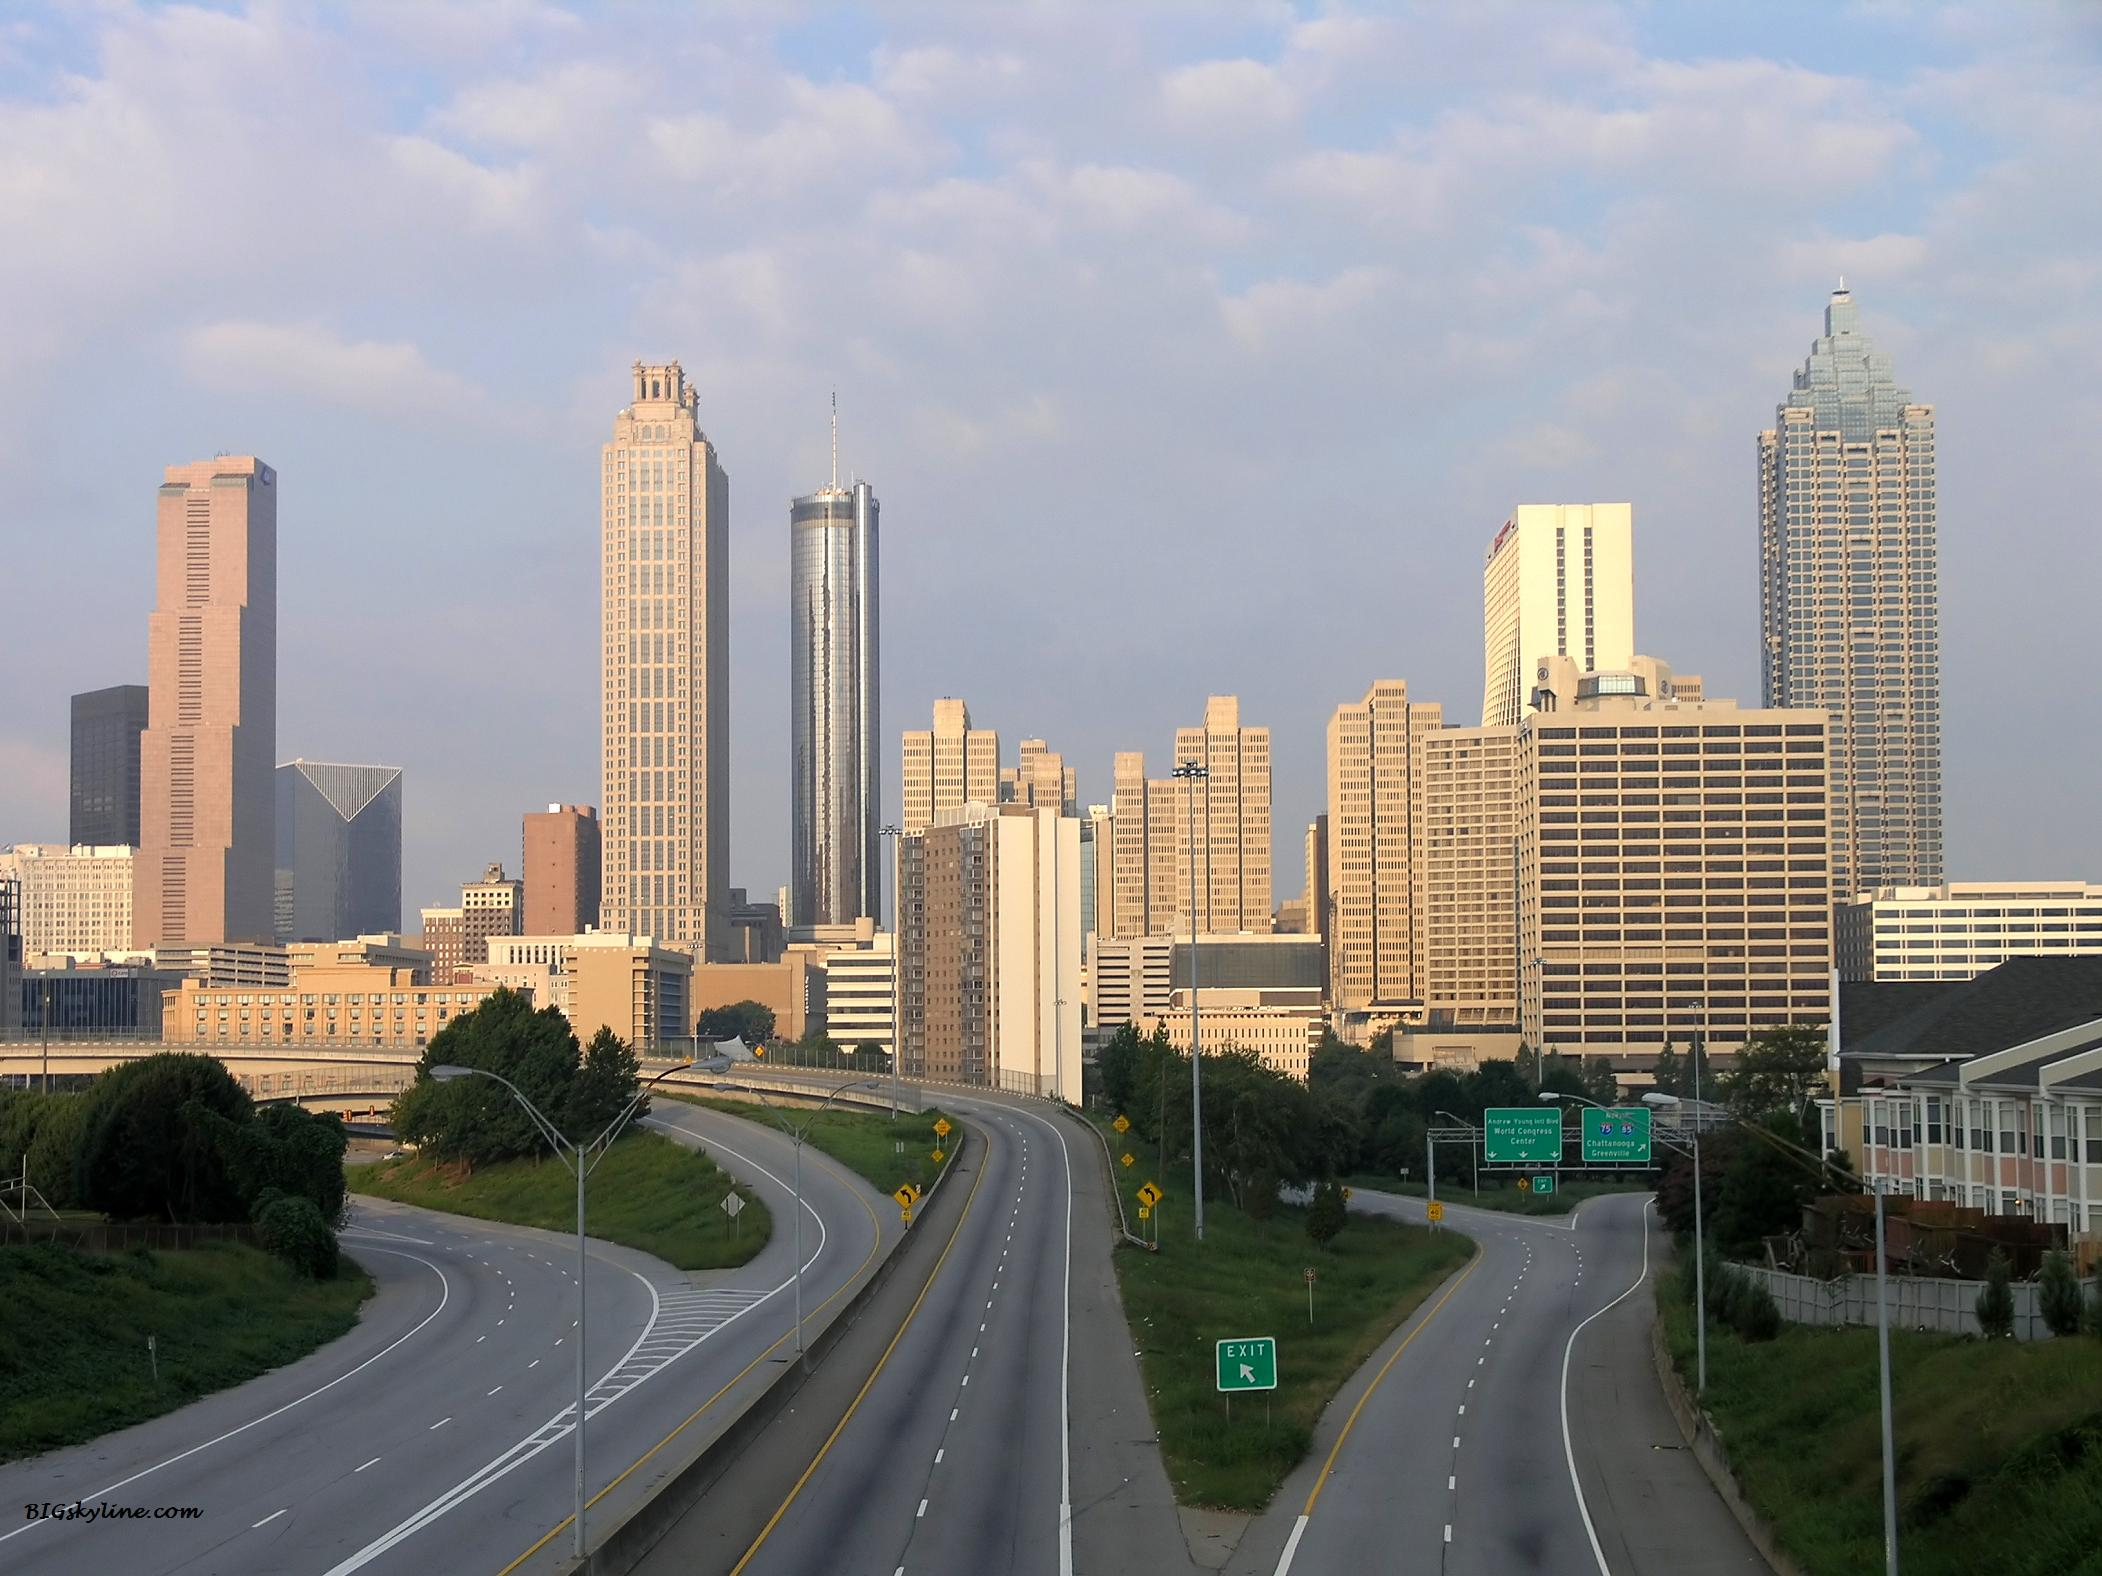 Atlanta skyline in Georgia, United States of America